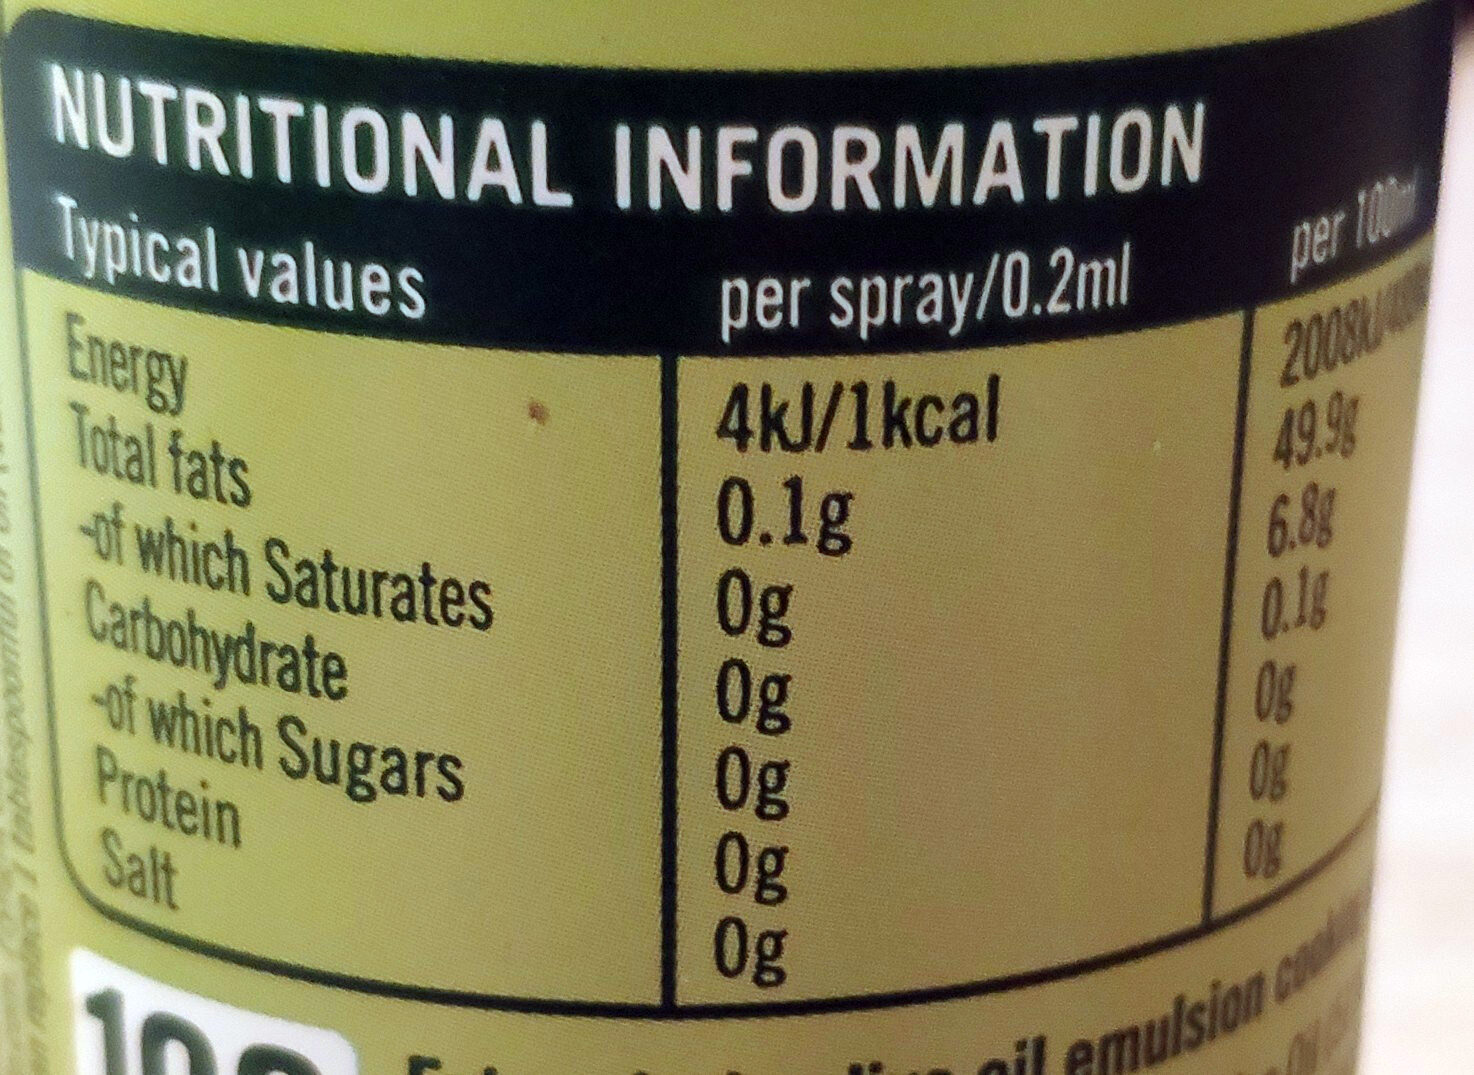 Extra Virgin Olive Oil Cooking Spray - Nutrition facts - en